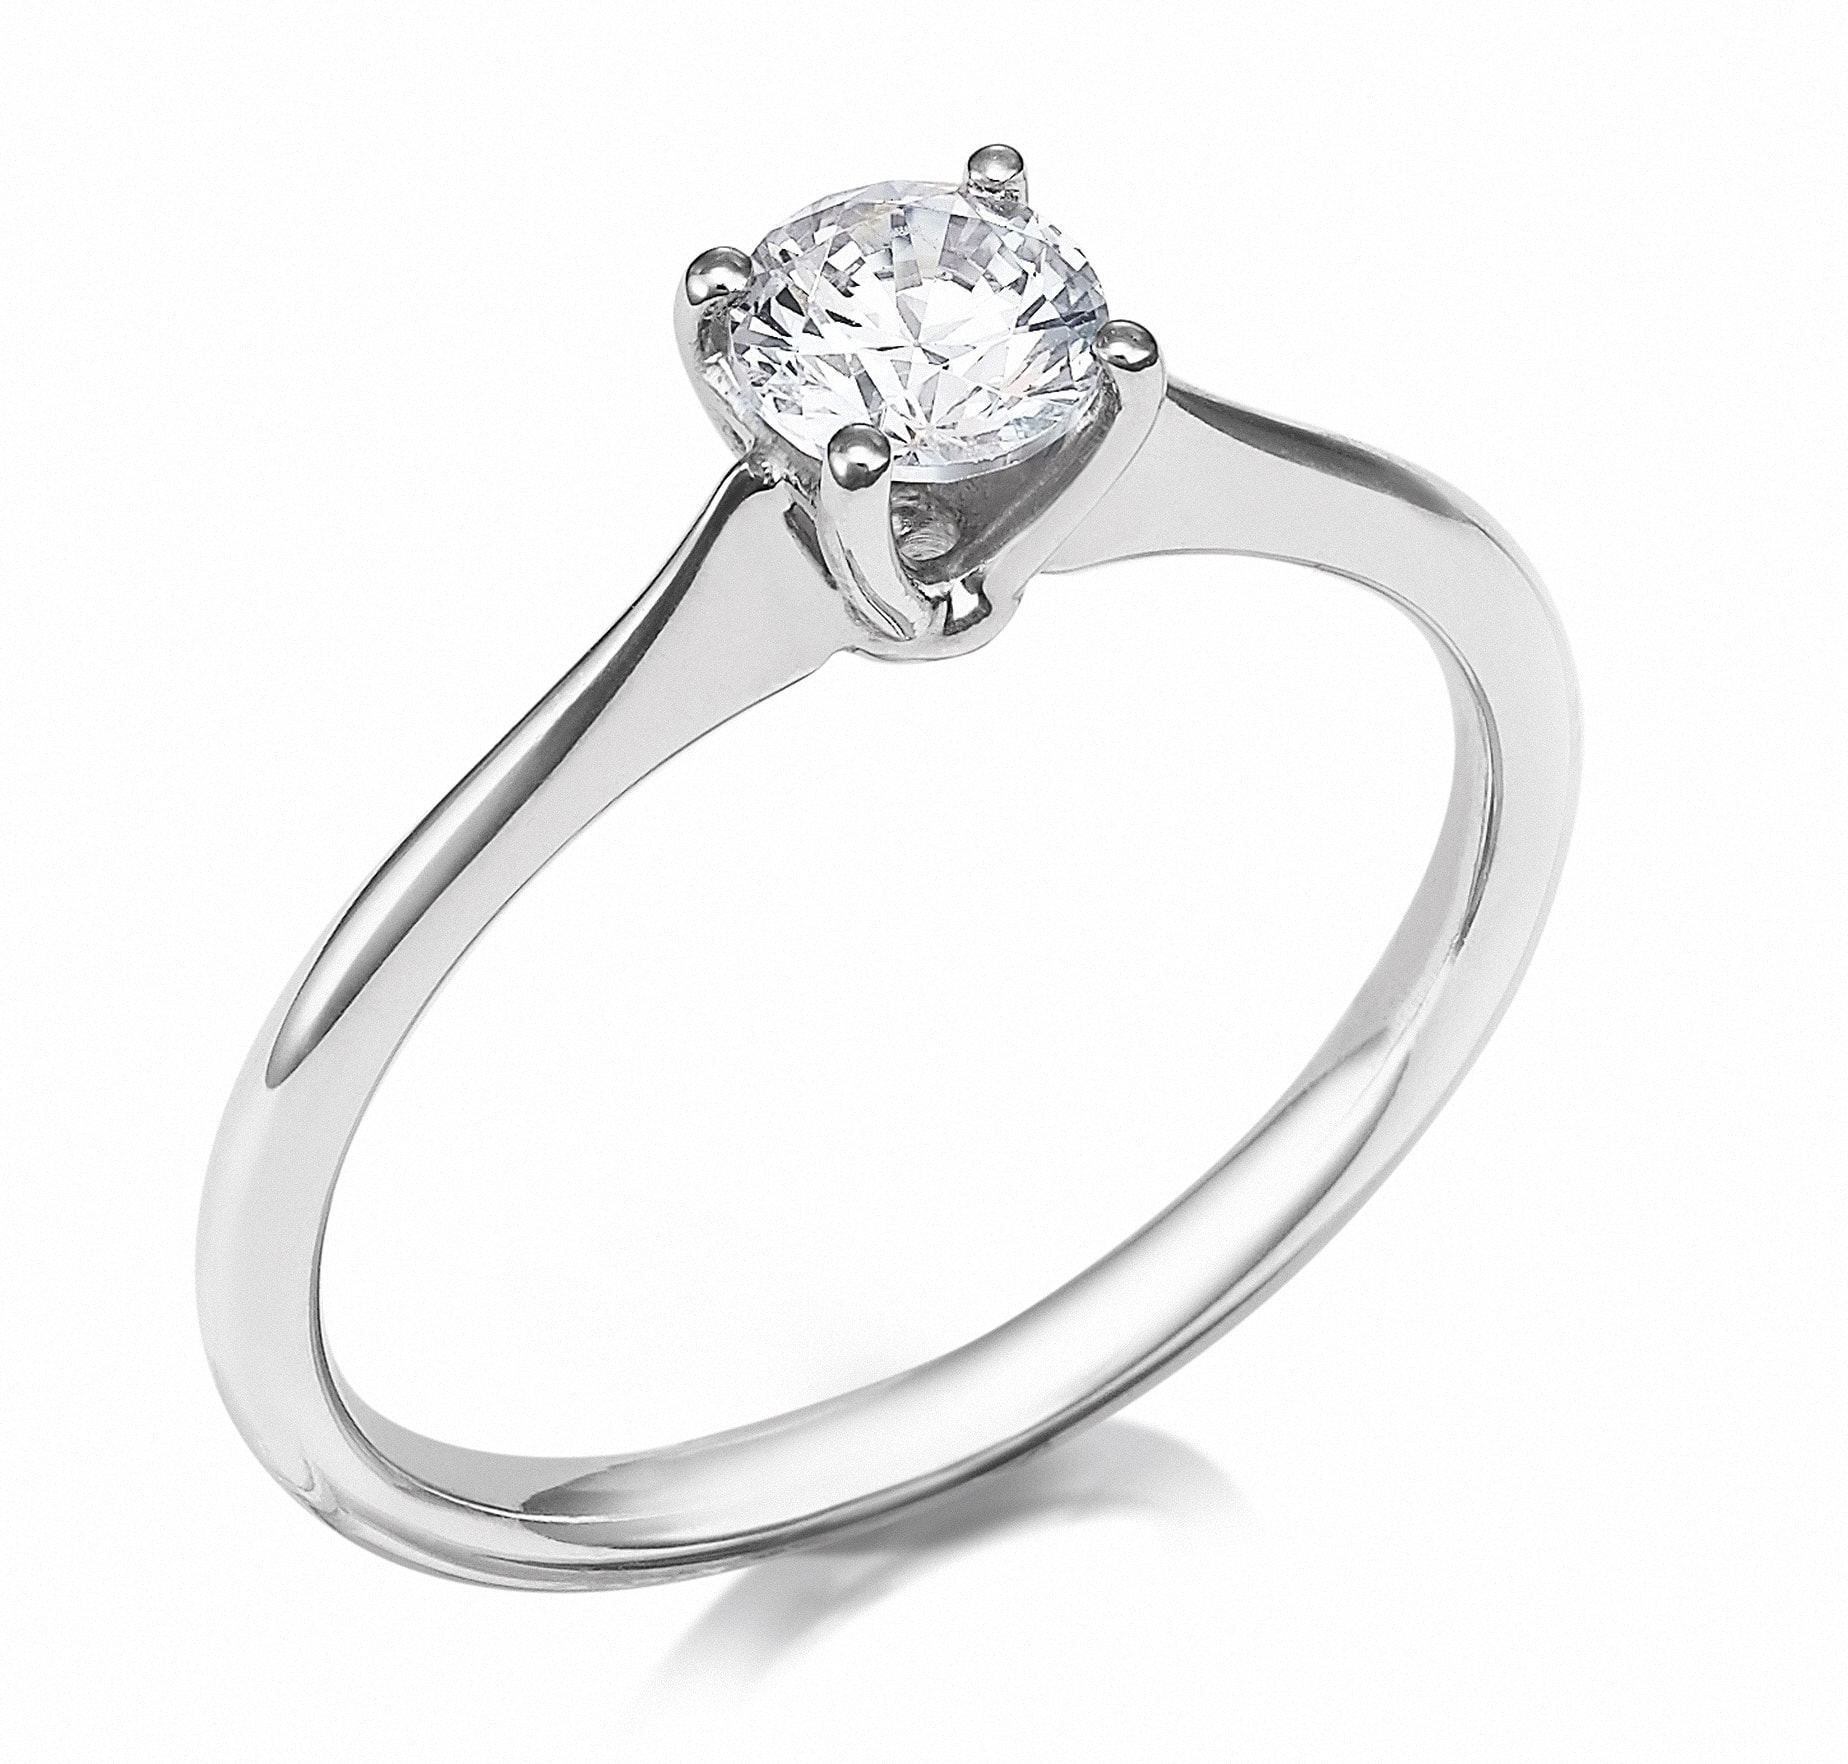 buy how ingle and to engagement source fairtrade rings jewellery london ethical rhode gold wedding shopping